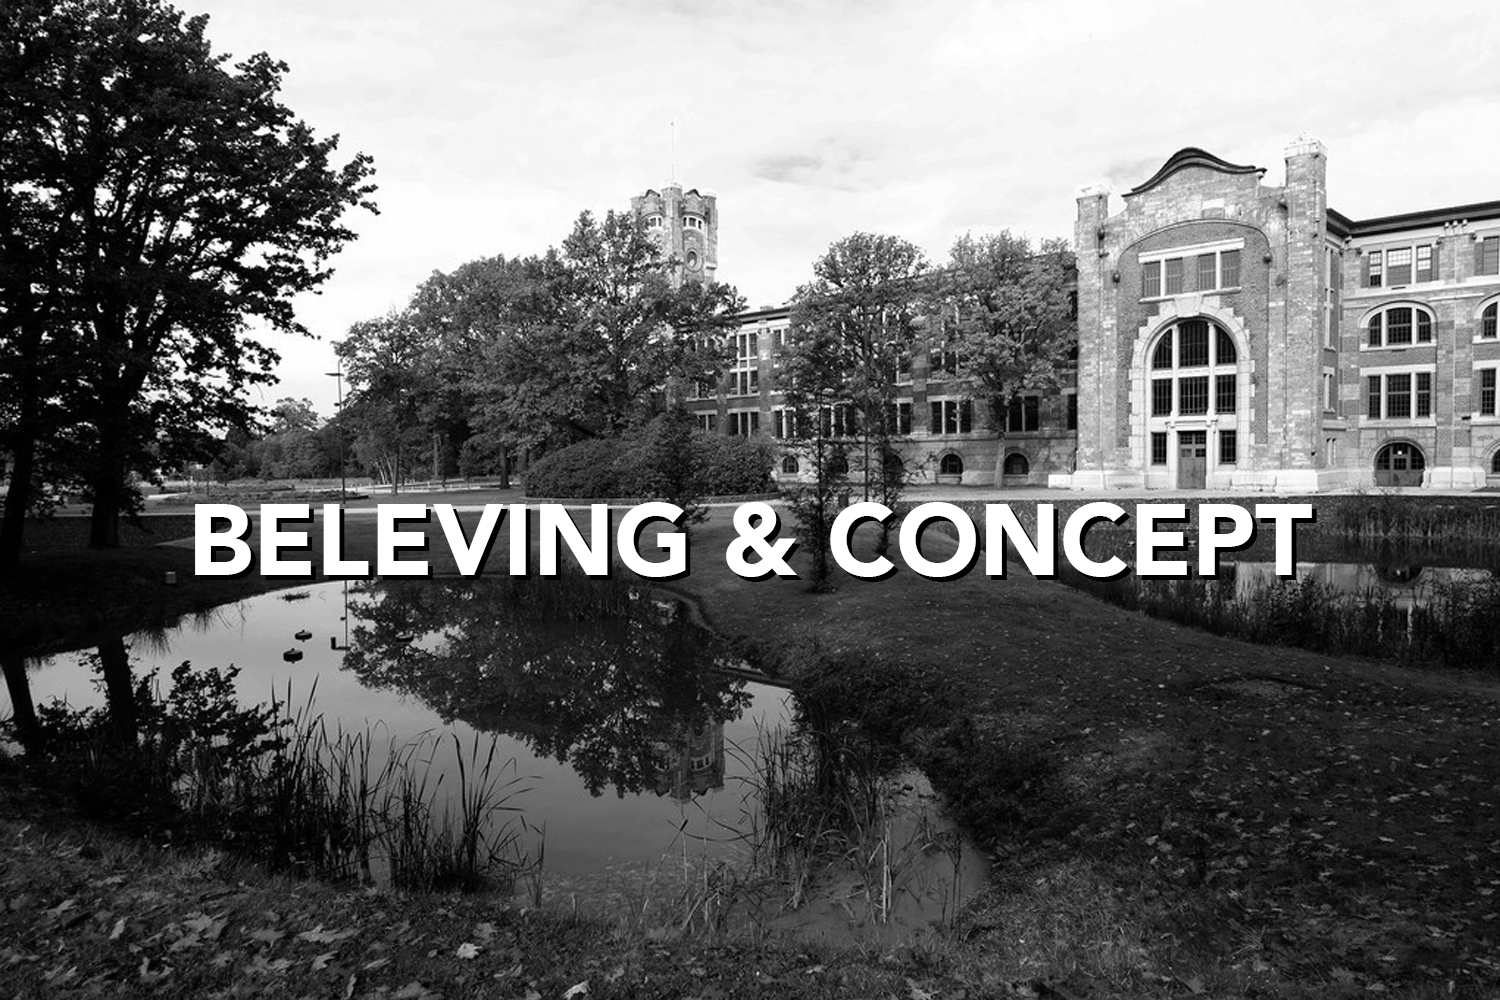 Beleving&Concept